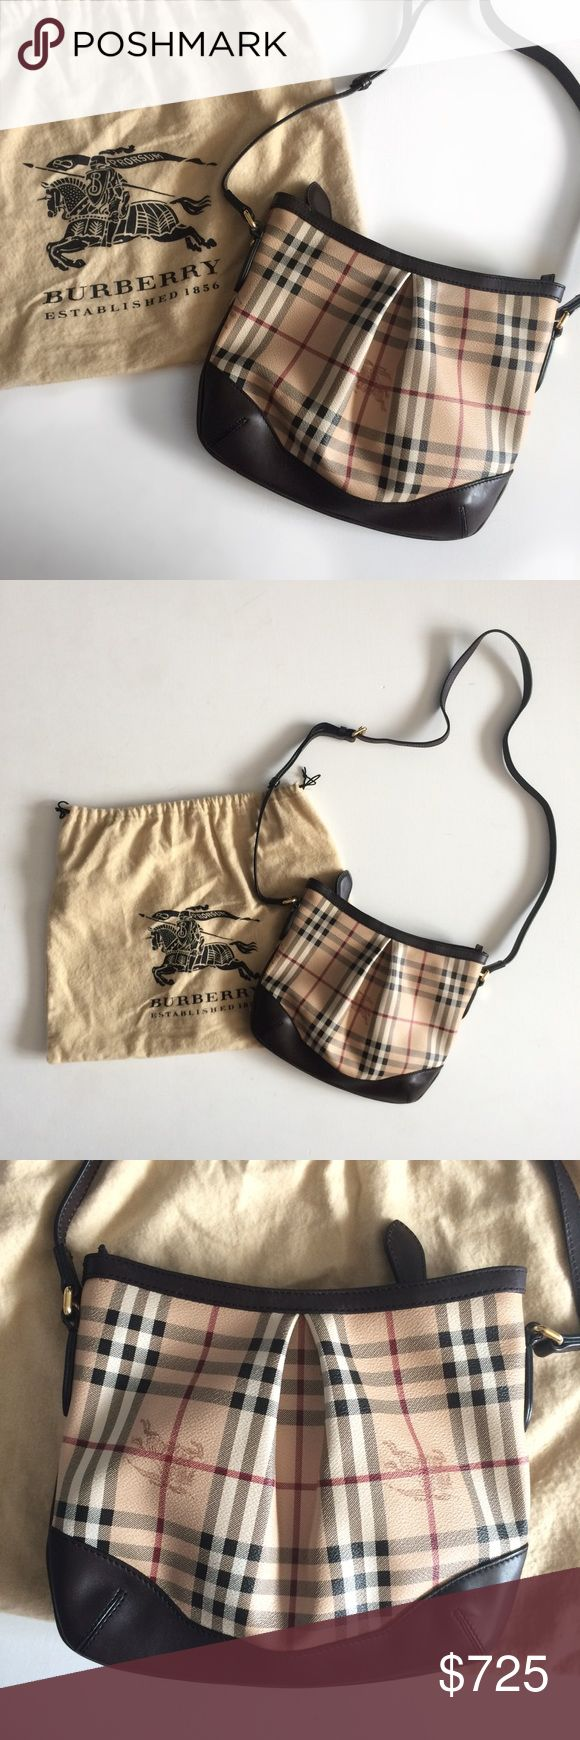 """Burberry Haymarket Check Crossbody Bag Authentic Burberry Haymarket Check Crossbody Bag with Case. Number ITTIVGRO58CAL. Selling for my Aunt, purchased in Italy. Worn only a handful of times. Very few marks around trim and strap needs to be worn in for rounder shape. Strap is adjustable.Calfskin trim. Please see all photos. Width is about 11.5""""in and length is about 9.5""""in Burberry Bags Crossbody Bags"""